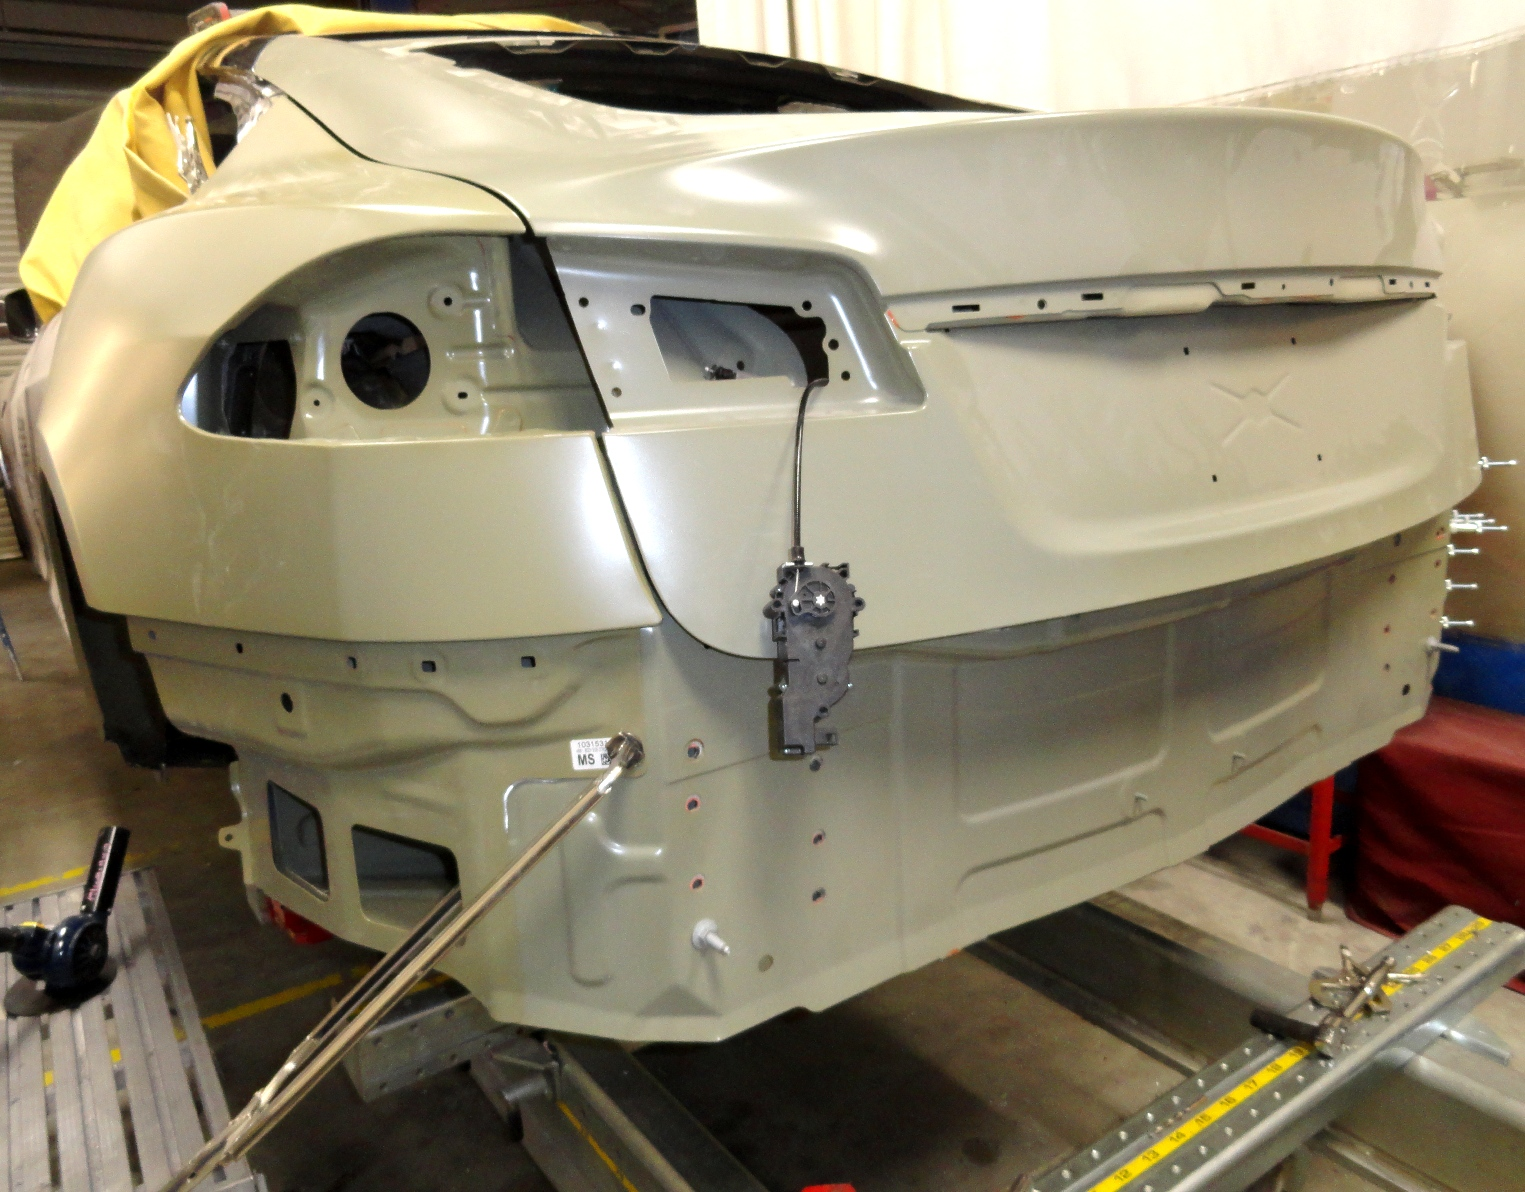 A Tesla Model S that we replaced the Rear Aluminum exterior panels per Tesla guidelines.